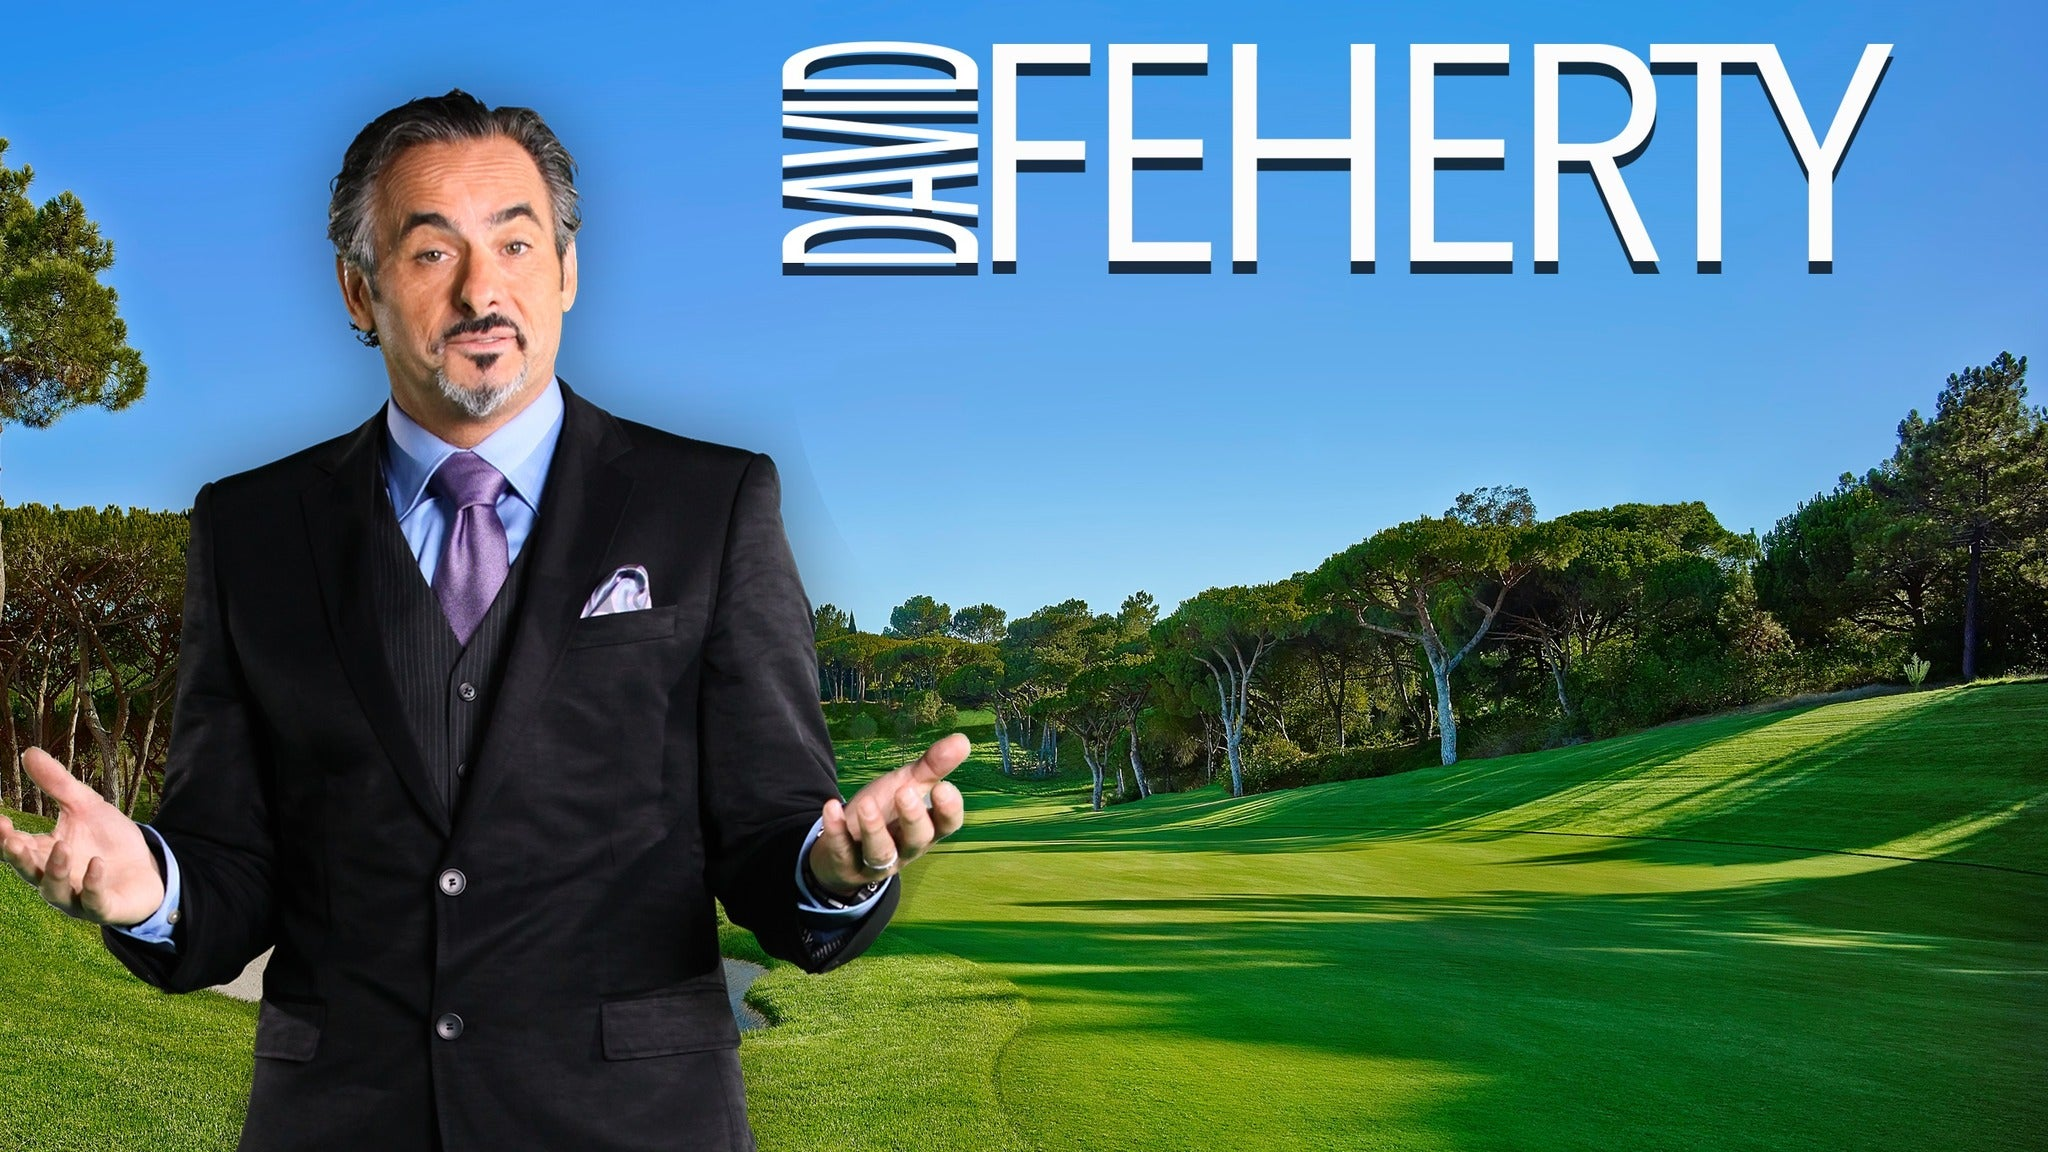 David Feherty at Orpheum Theatre - Wichita KS